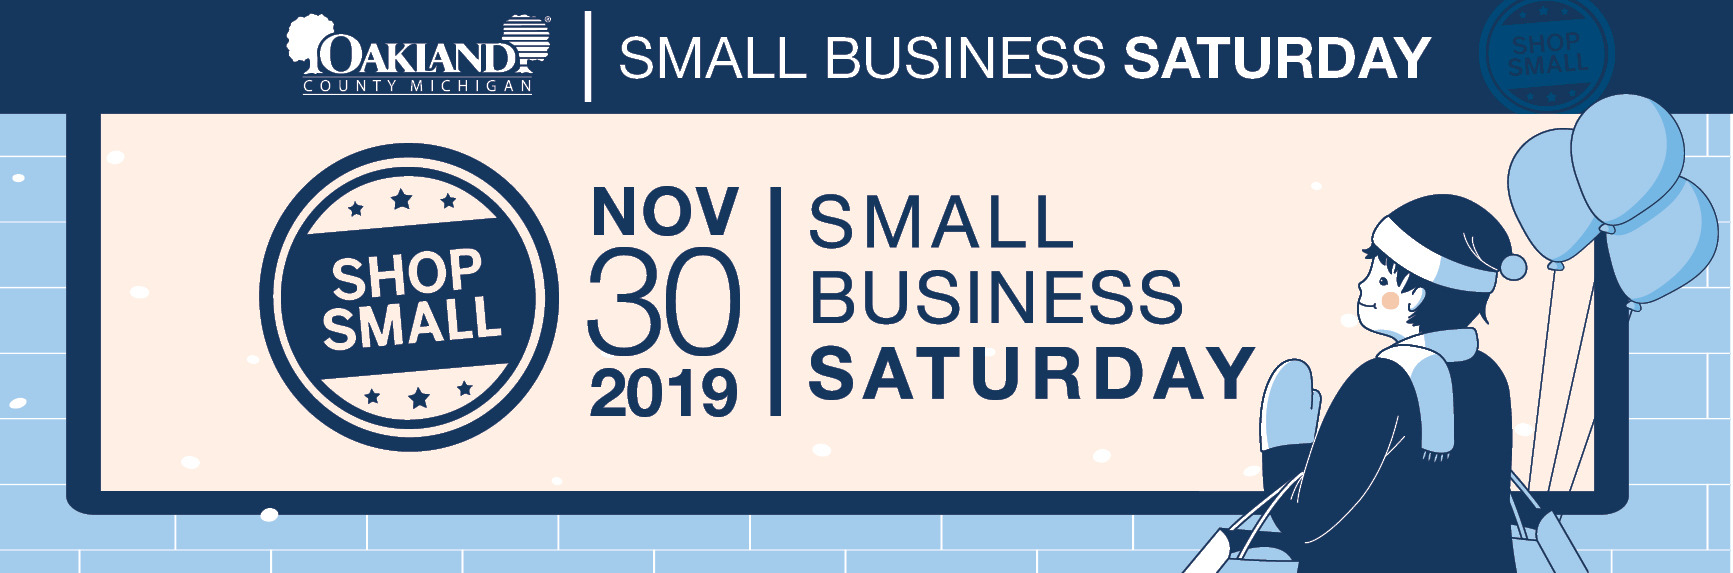 Small Business Saturday Contest